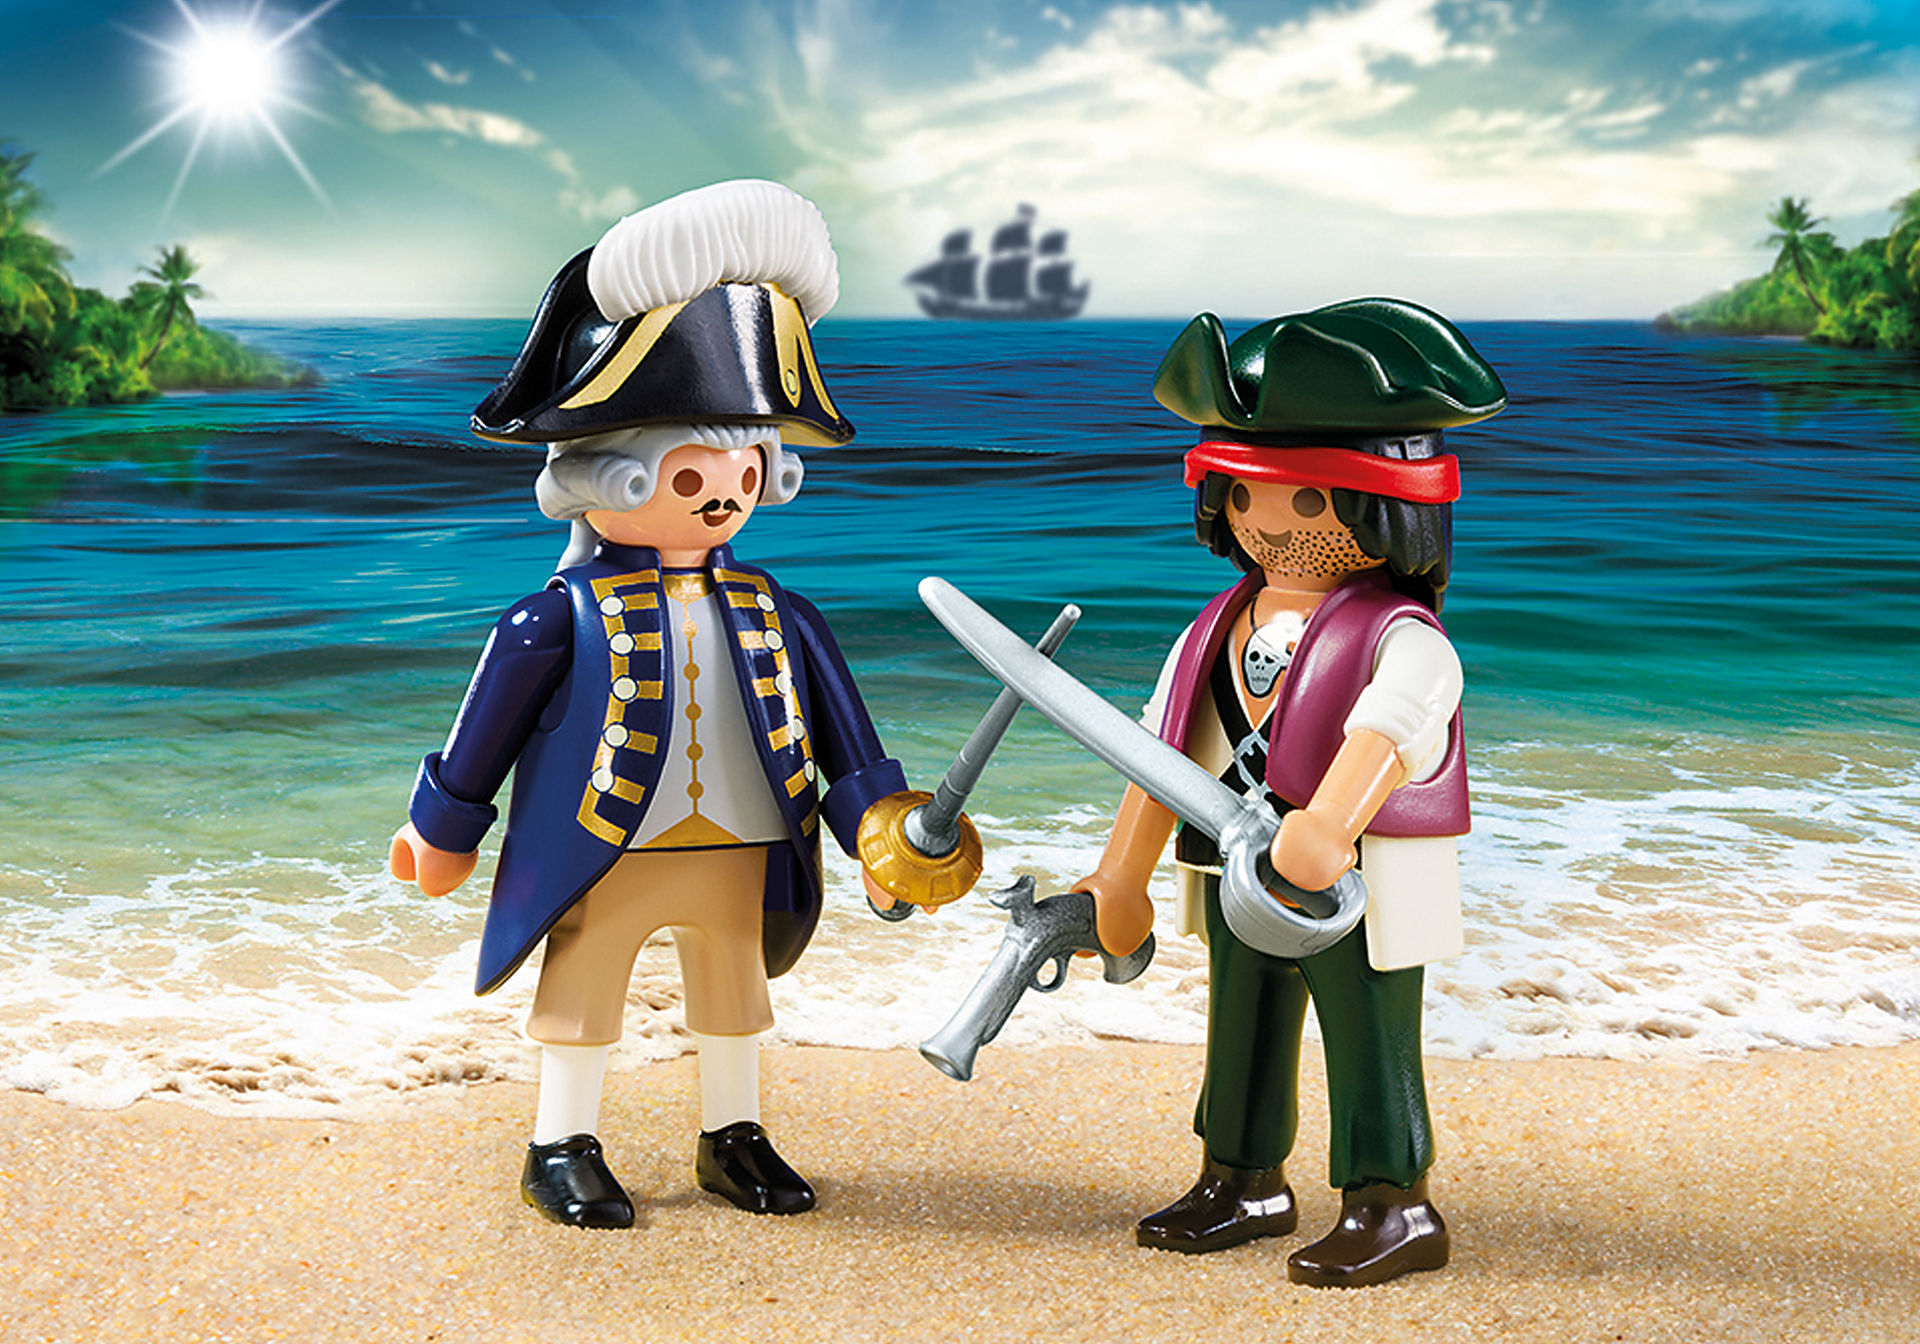 http://media.playmobil.com/i/playmobil/6846_product_detail/Pirate and Soldier Duo Pack